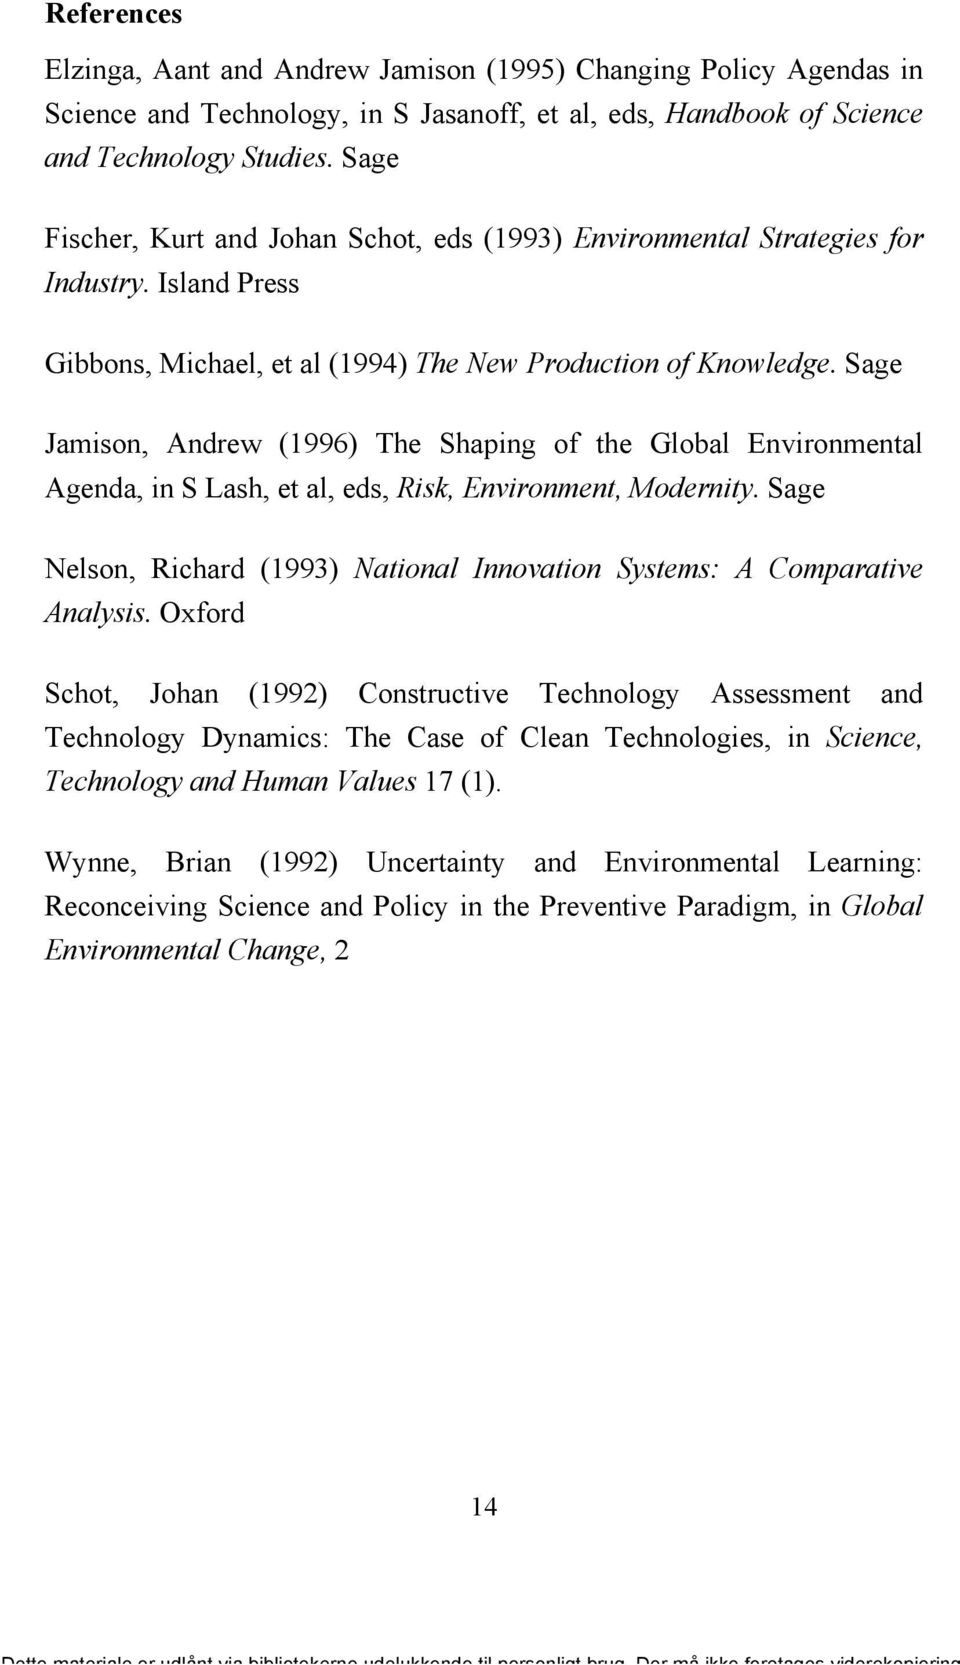 Sage Jamison, Andrew (1996) The Shaping of the Global Environmental Agenda, in S Lash, et al, eds, Risk, Environment, Modernity.